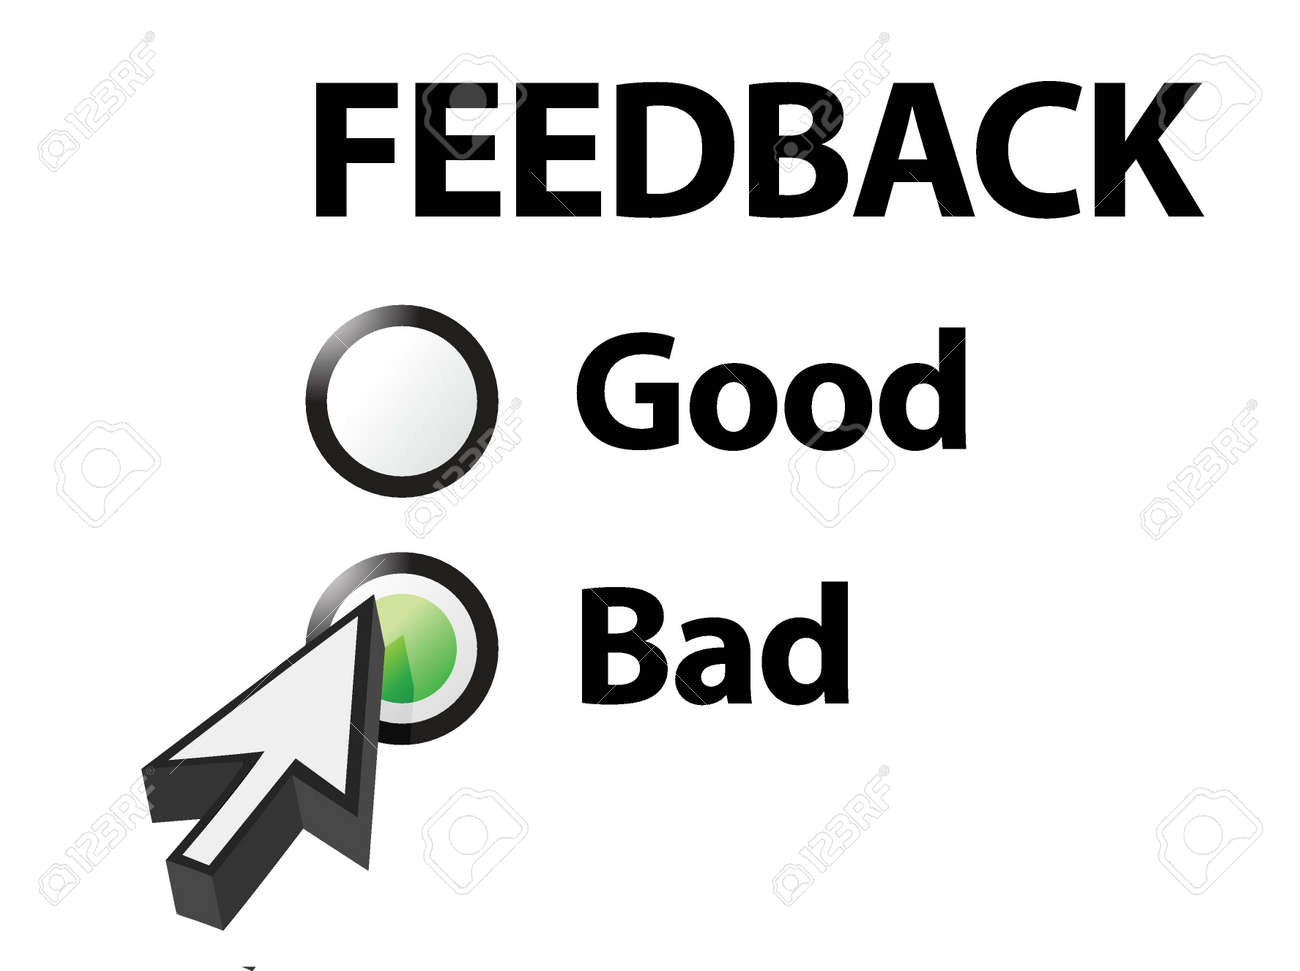 15734945-bad-selected-on-a-feedback-ques